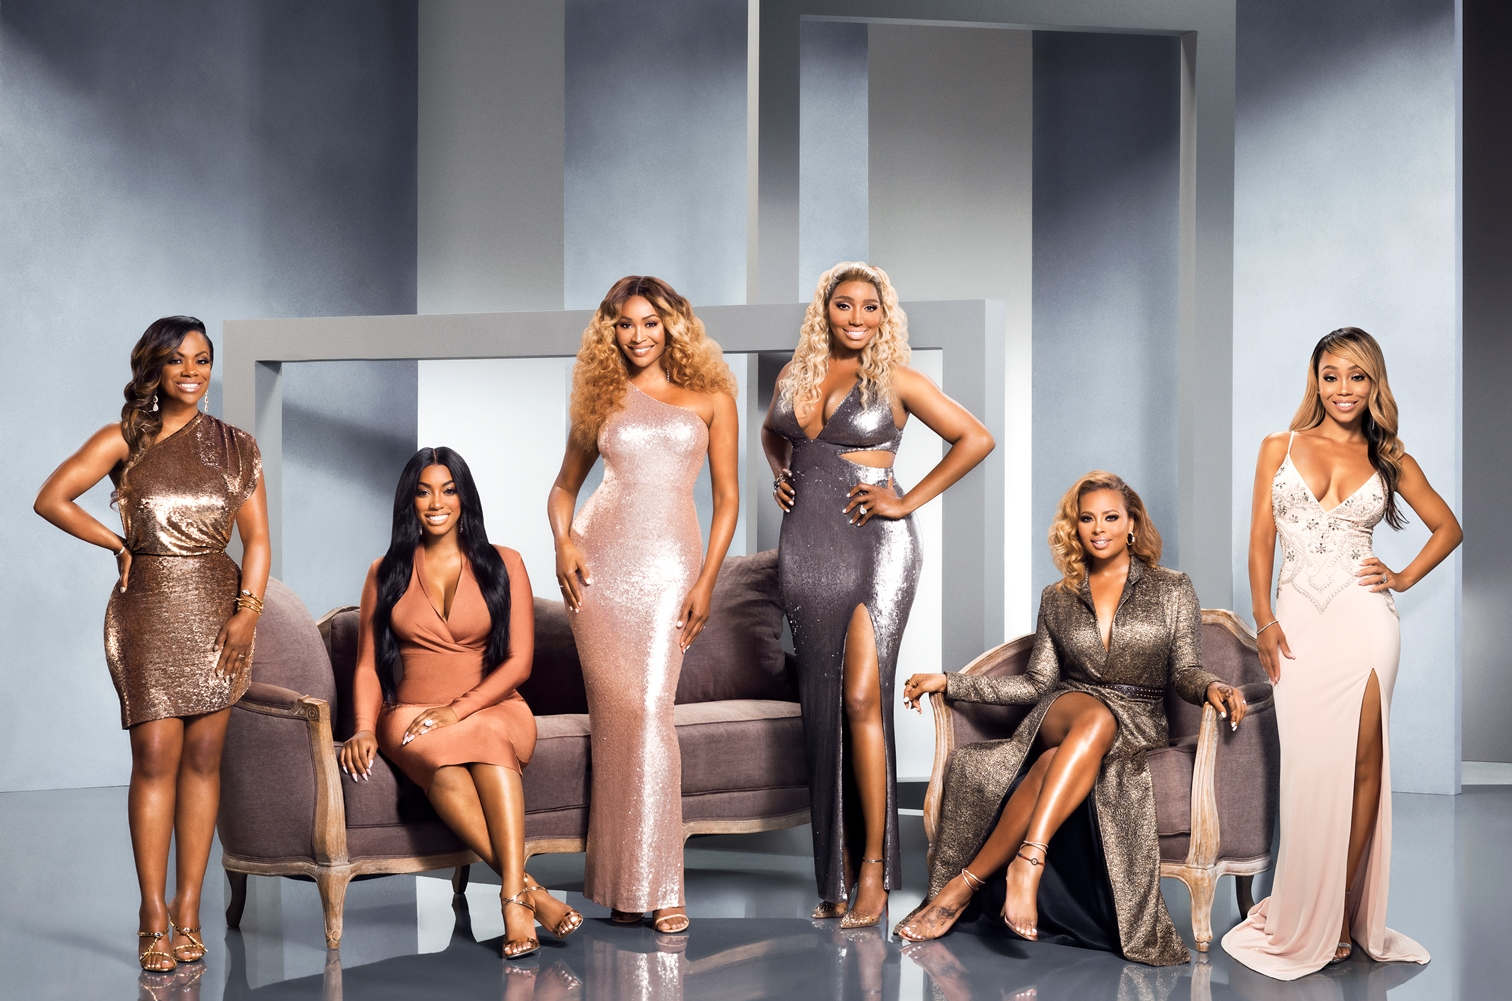 The-Real-Housewives-of-Atlanta-Season-11-Cast-Photo.jpg